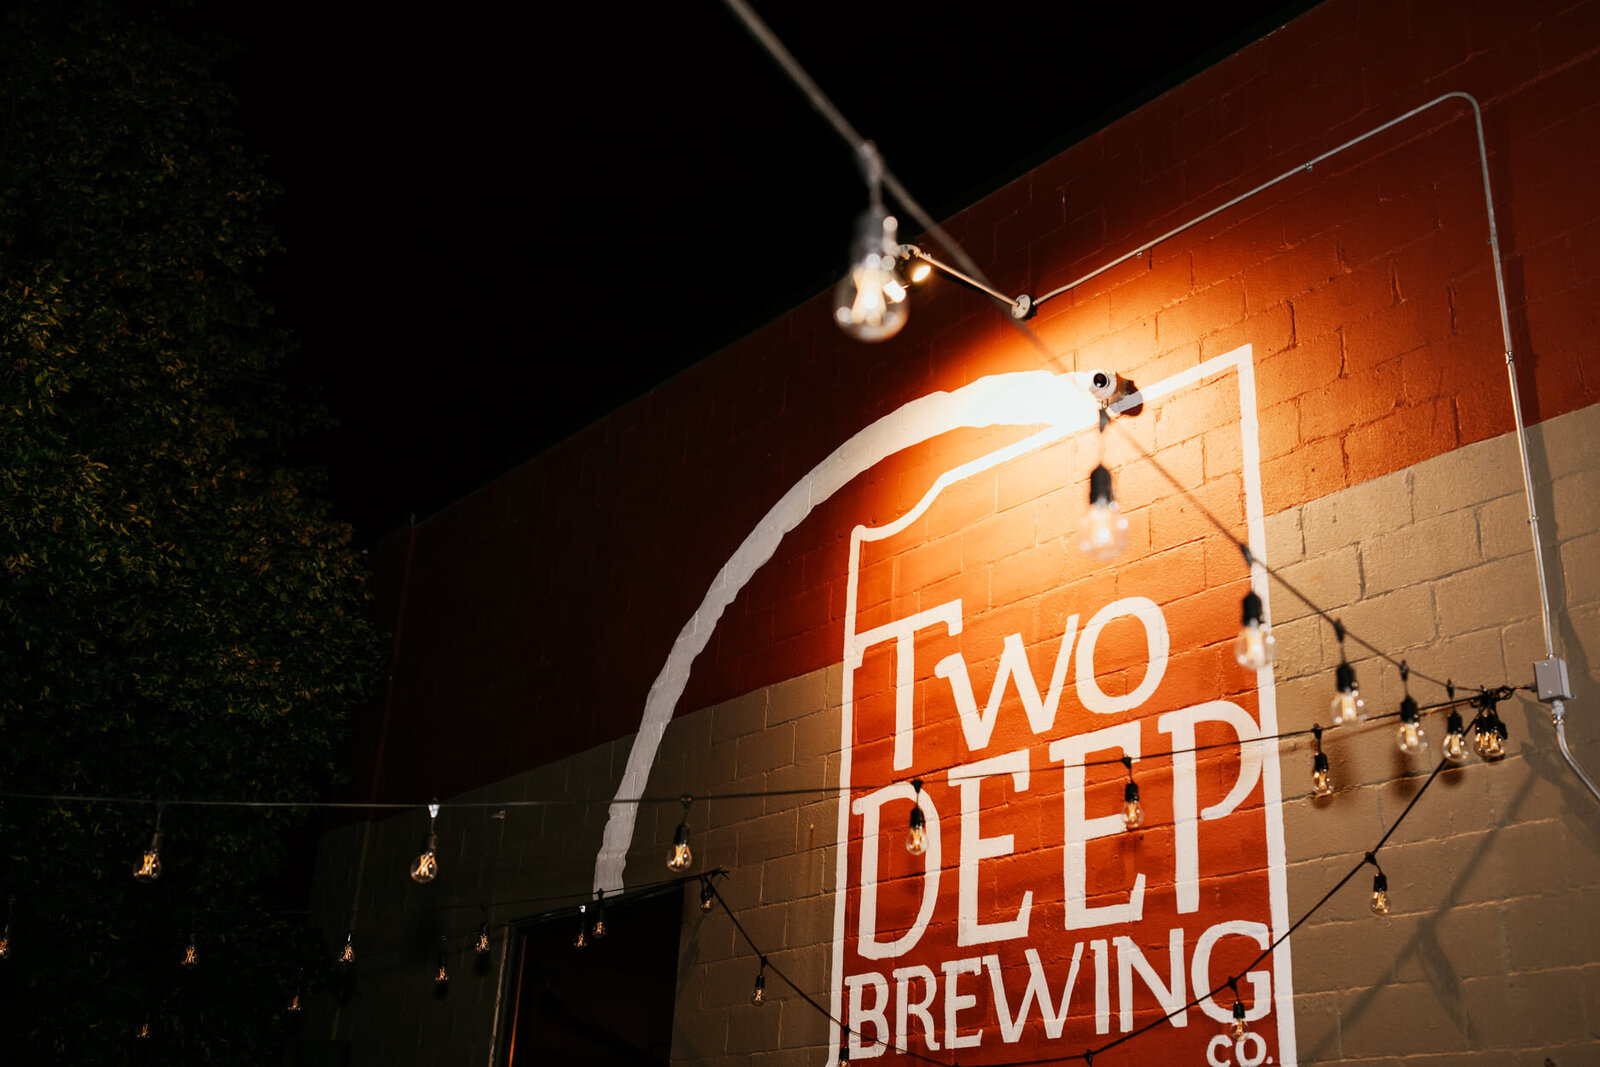 two deep brewing